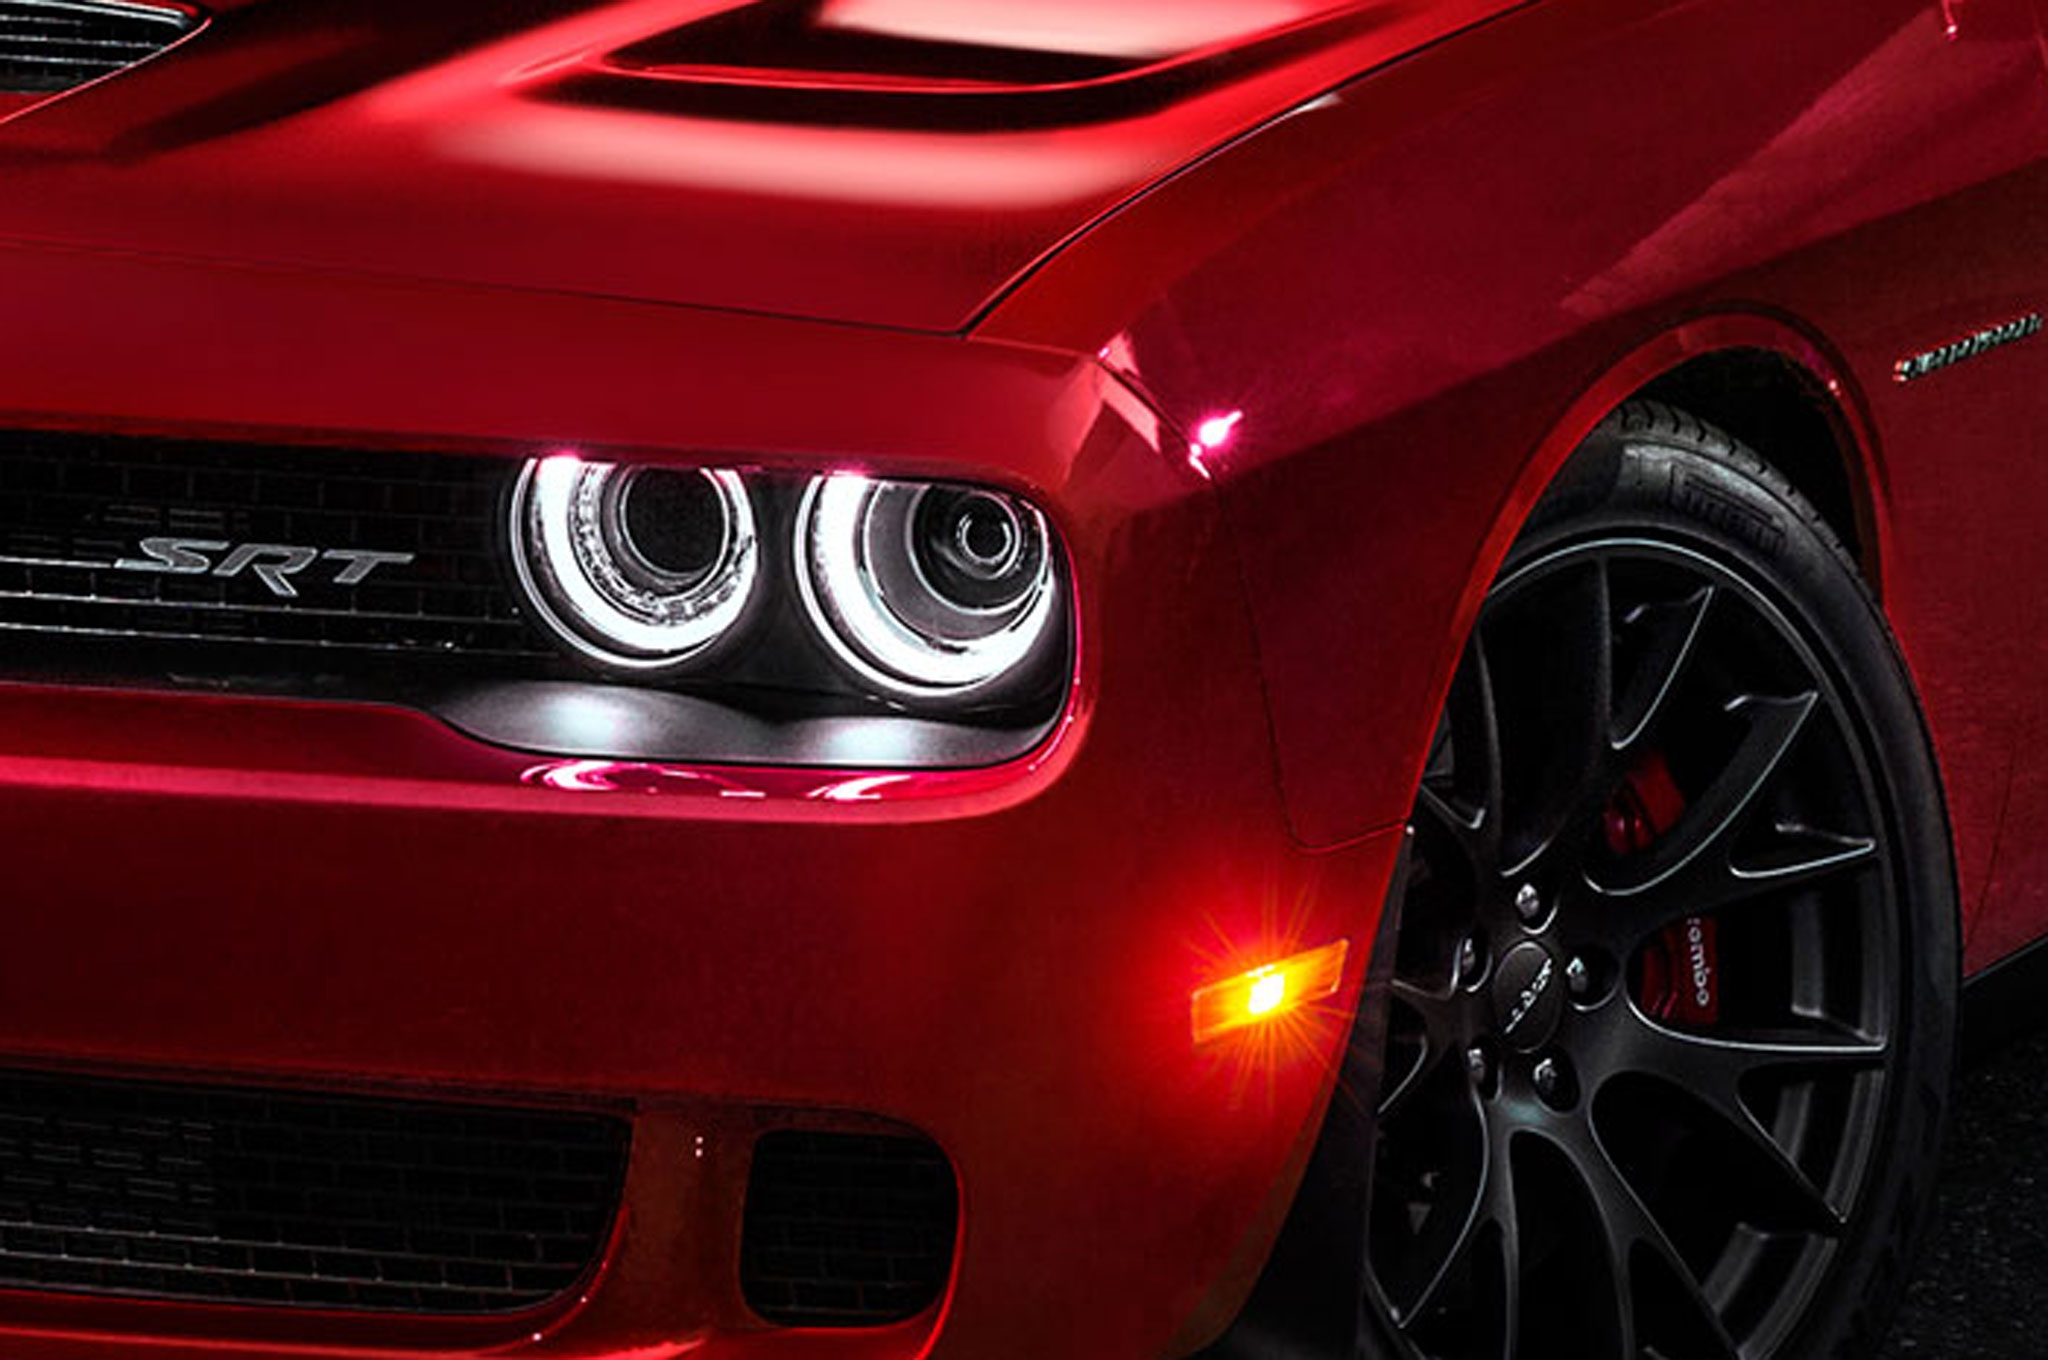 Mopar Cold Air Intake 2014 Challengerchallenger Fuse Box Cover 2012 Challenger Bangshift Com How Successful Is The Hellcat First Numbers